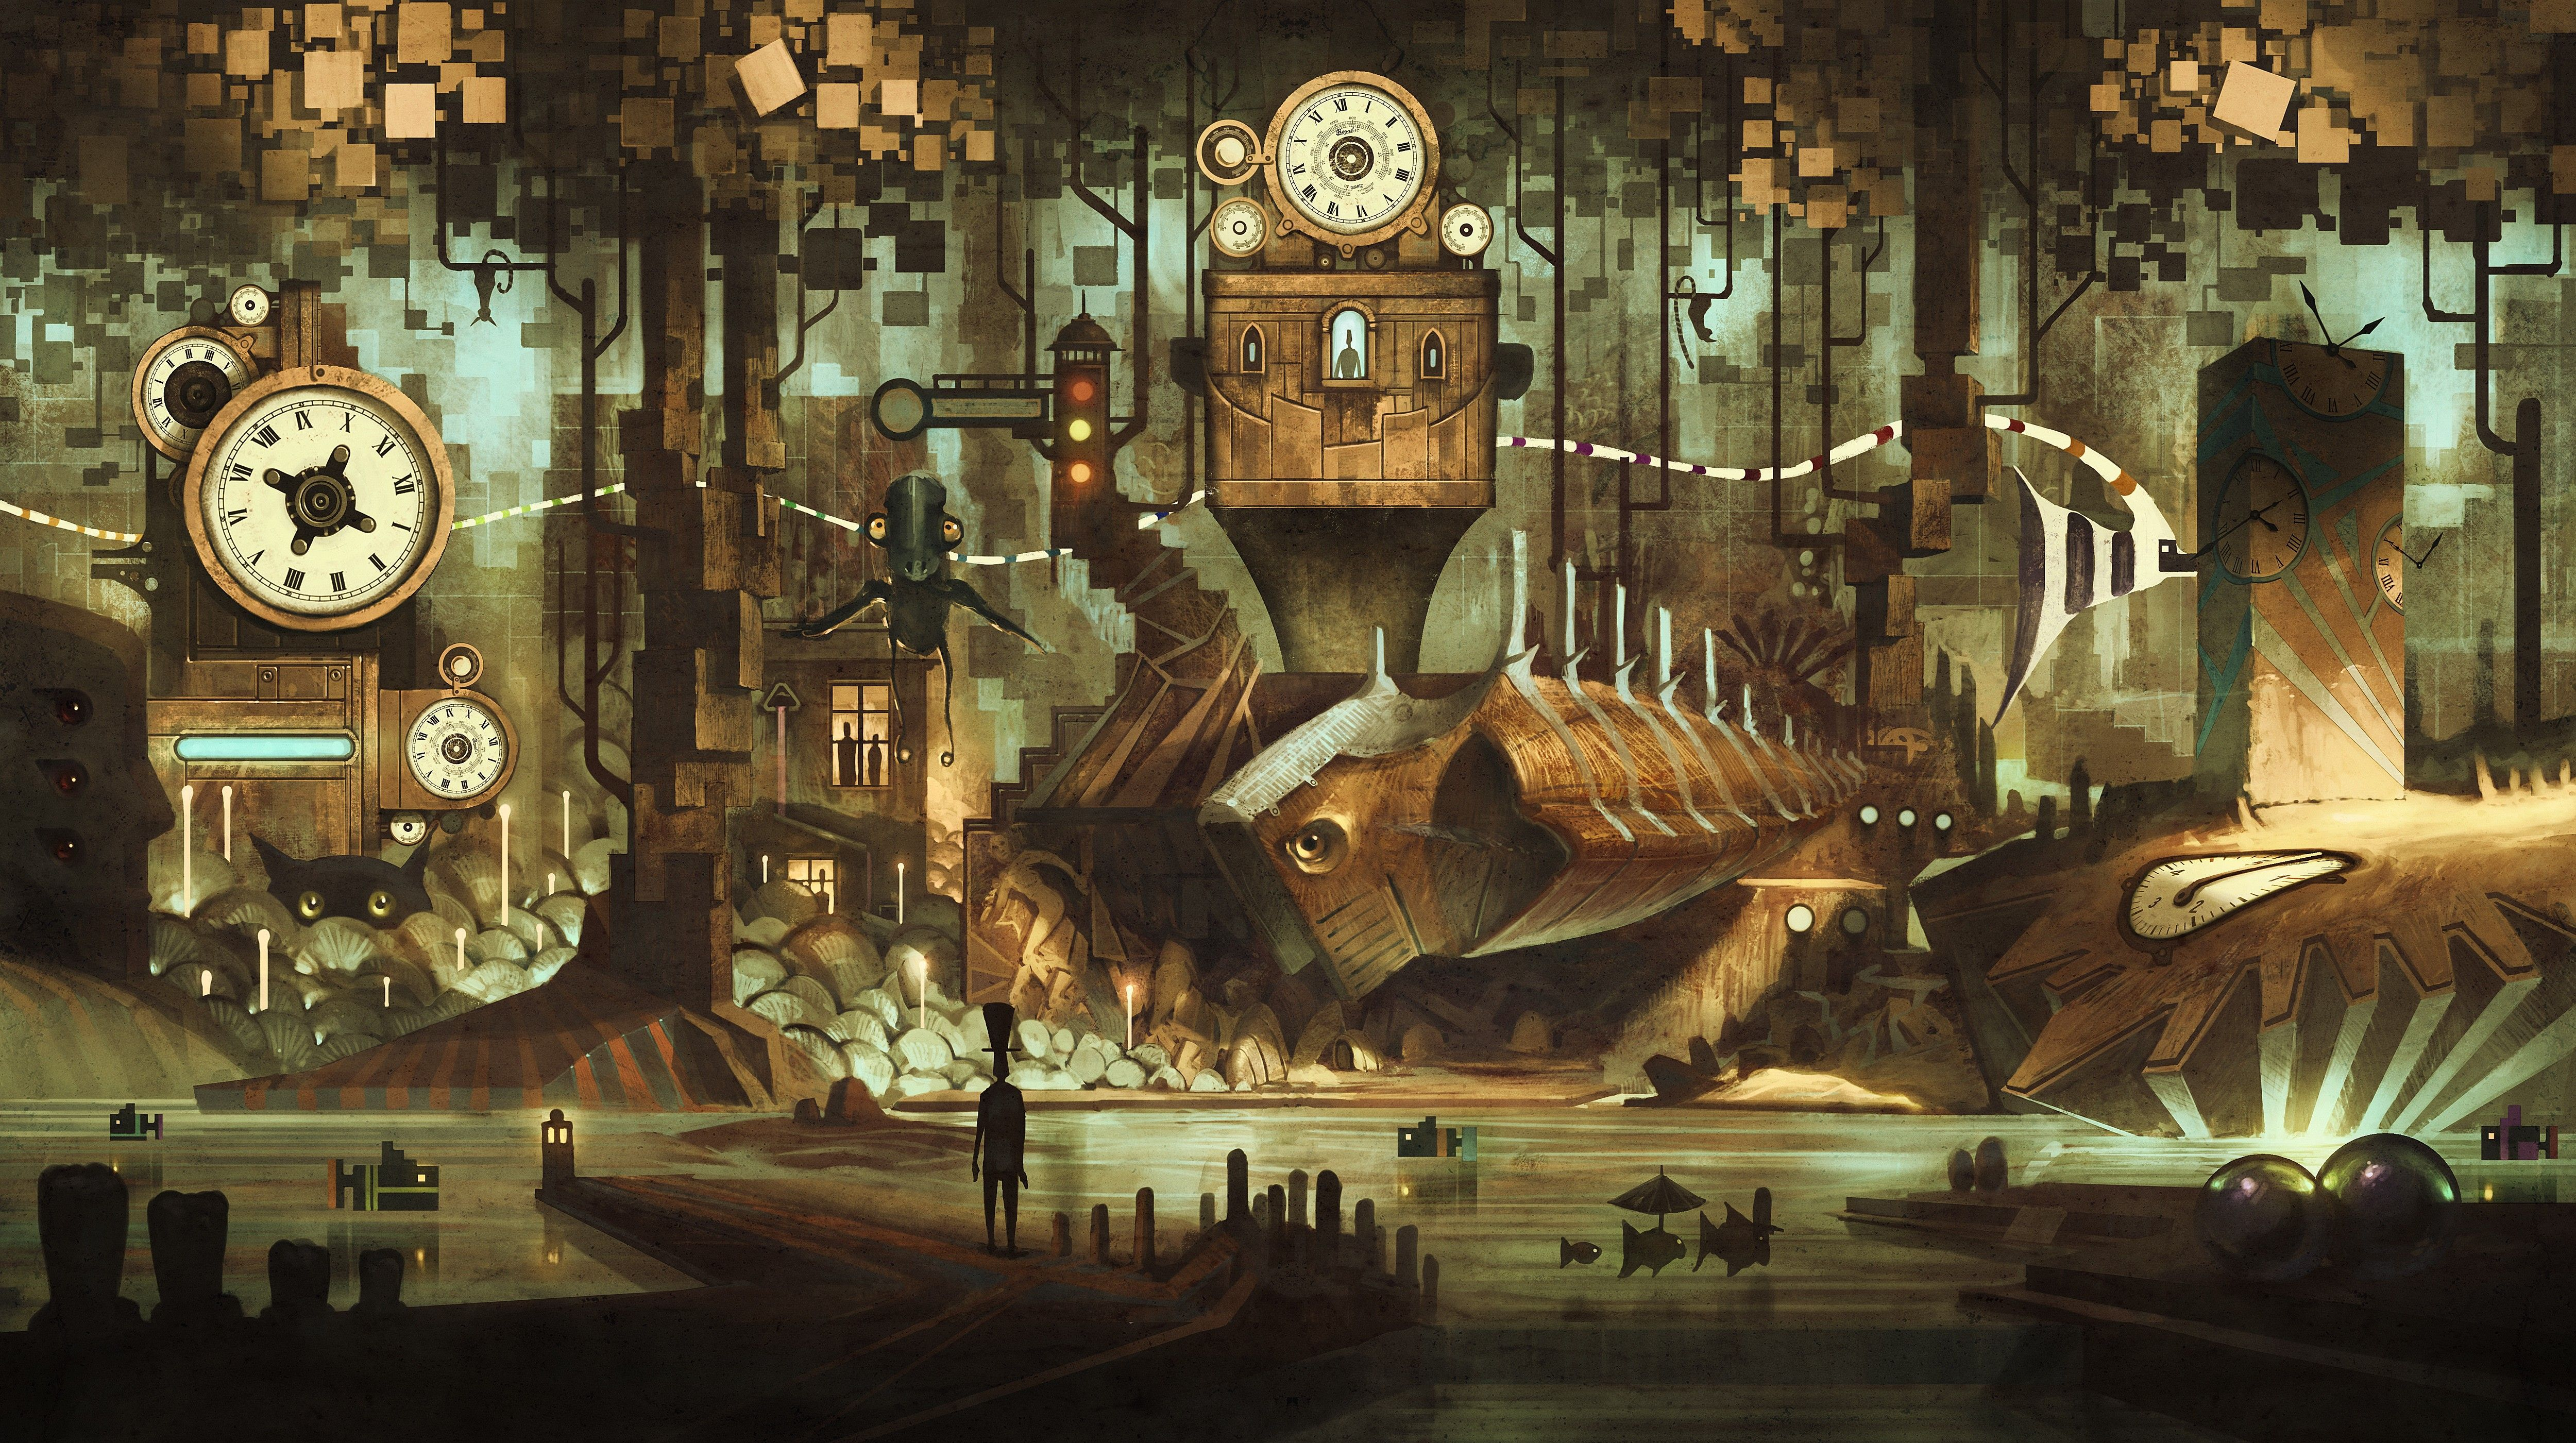 Steampunk City Wallpapers Top Free Steampunk City Backgrounds